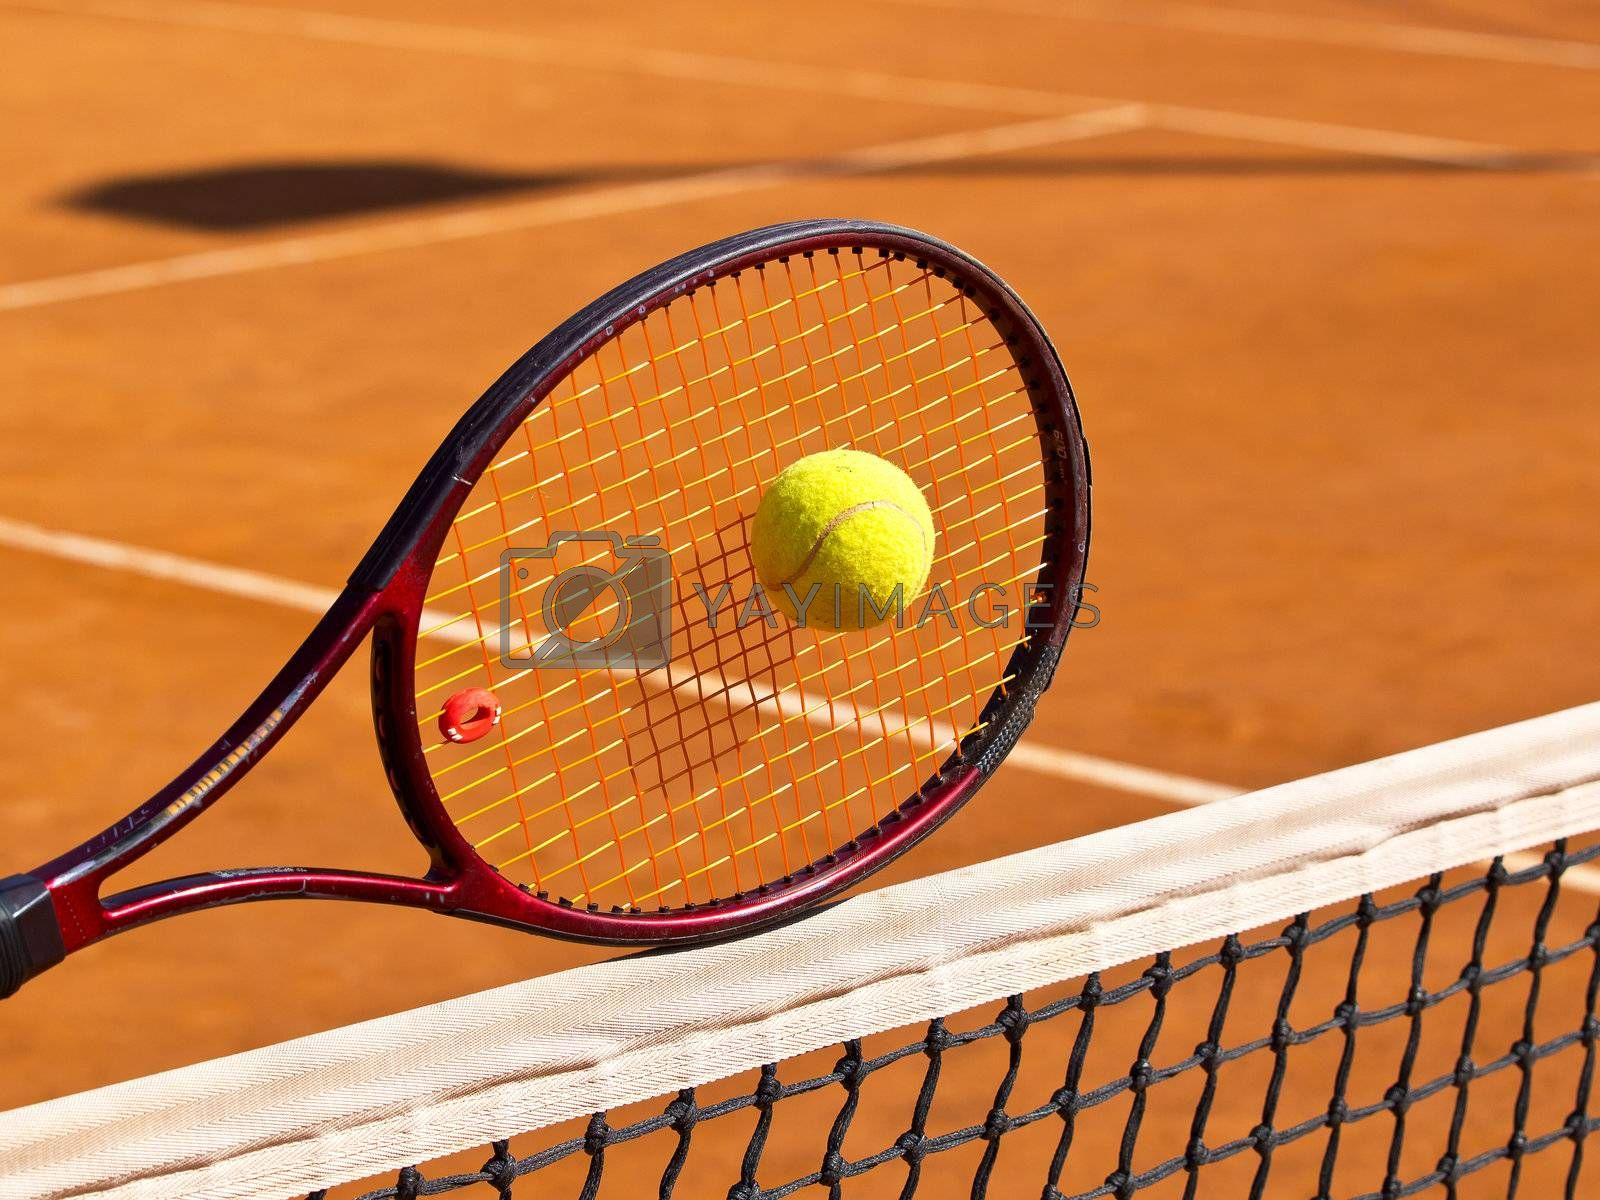 tennis racquet on the net in the middle of the tennis court